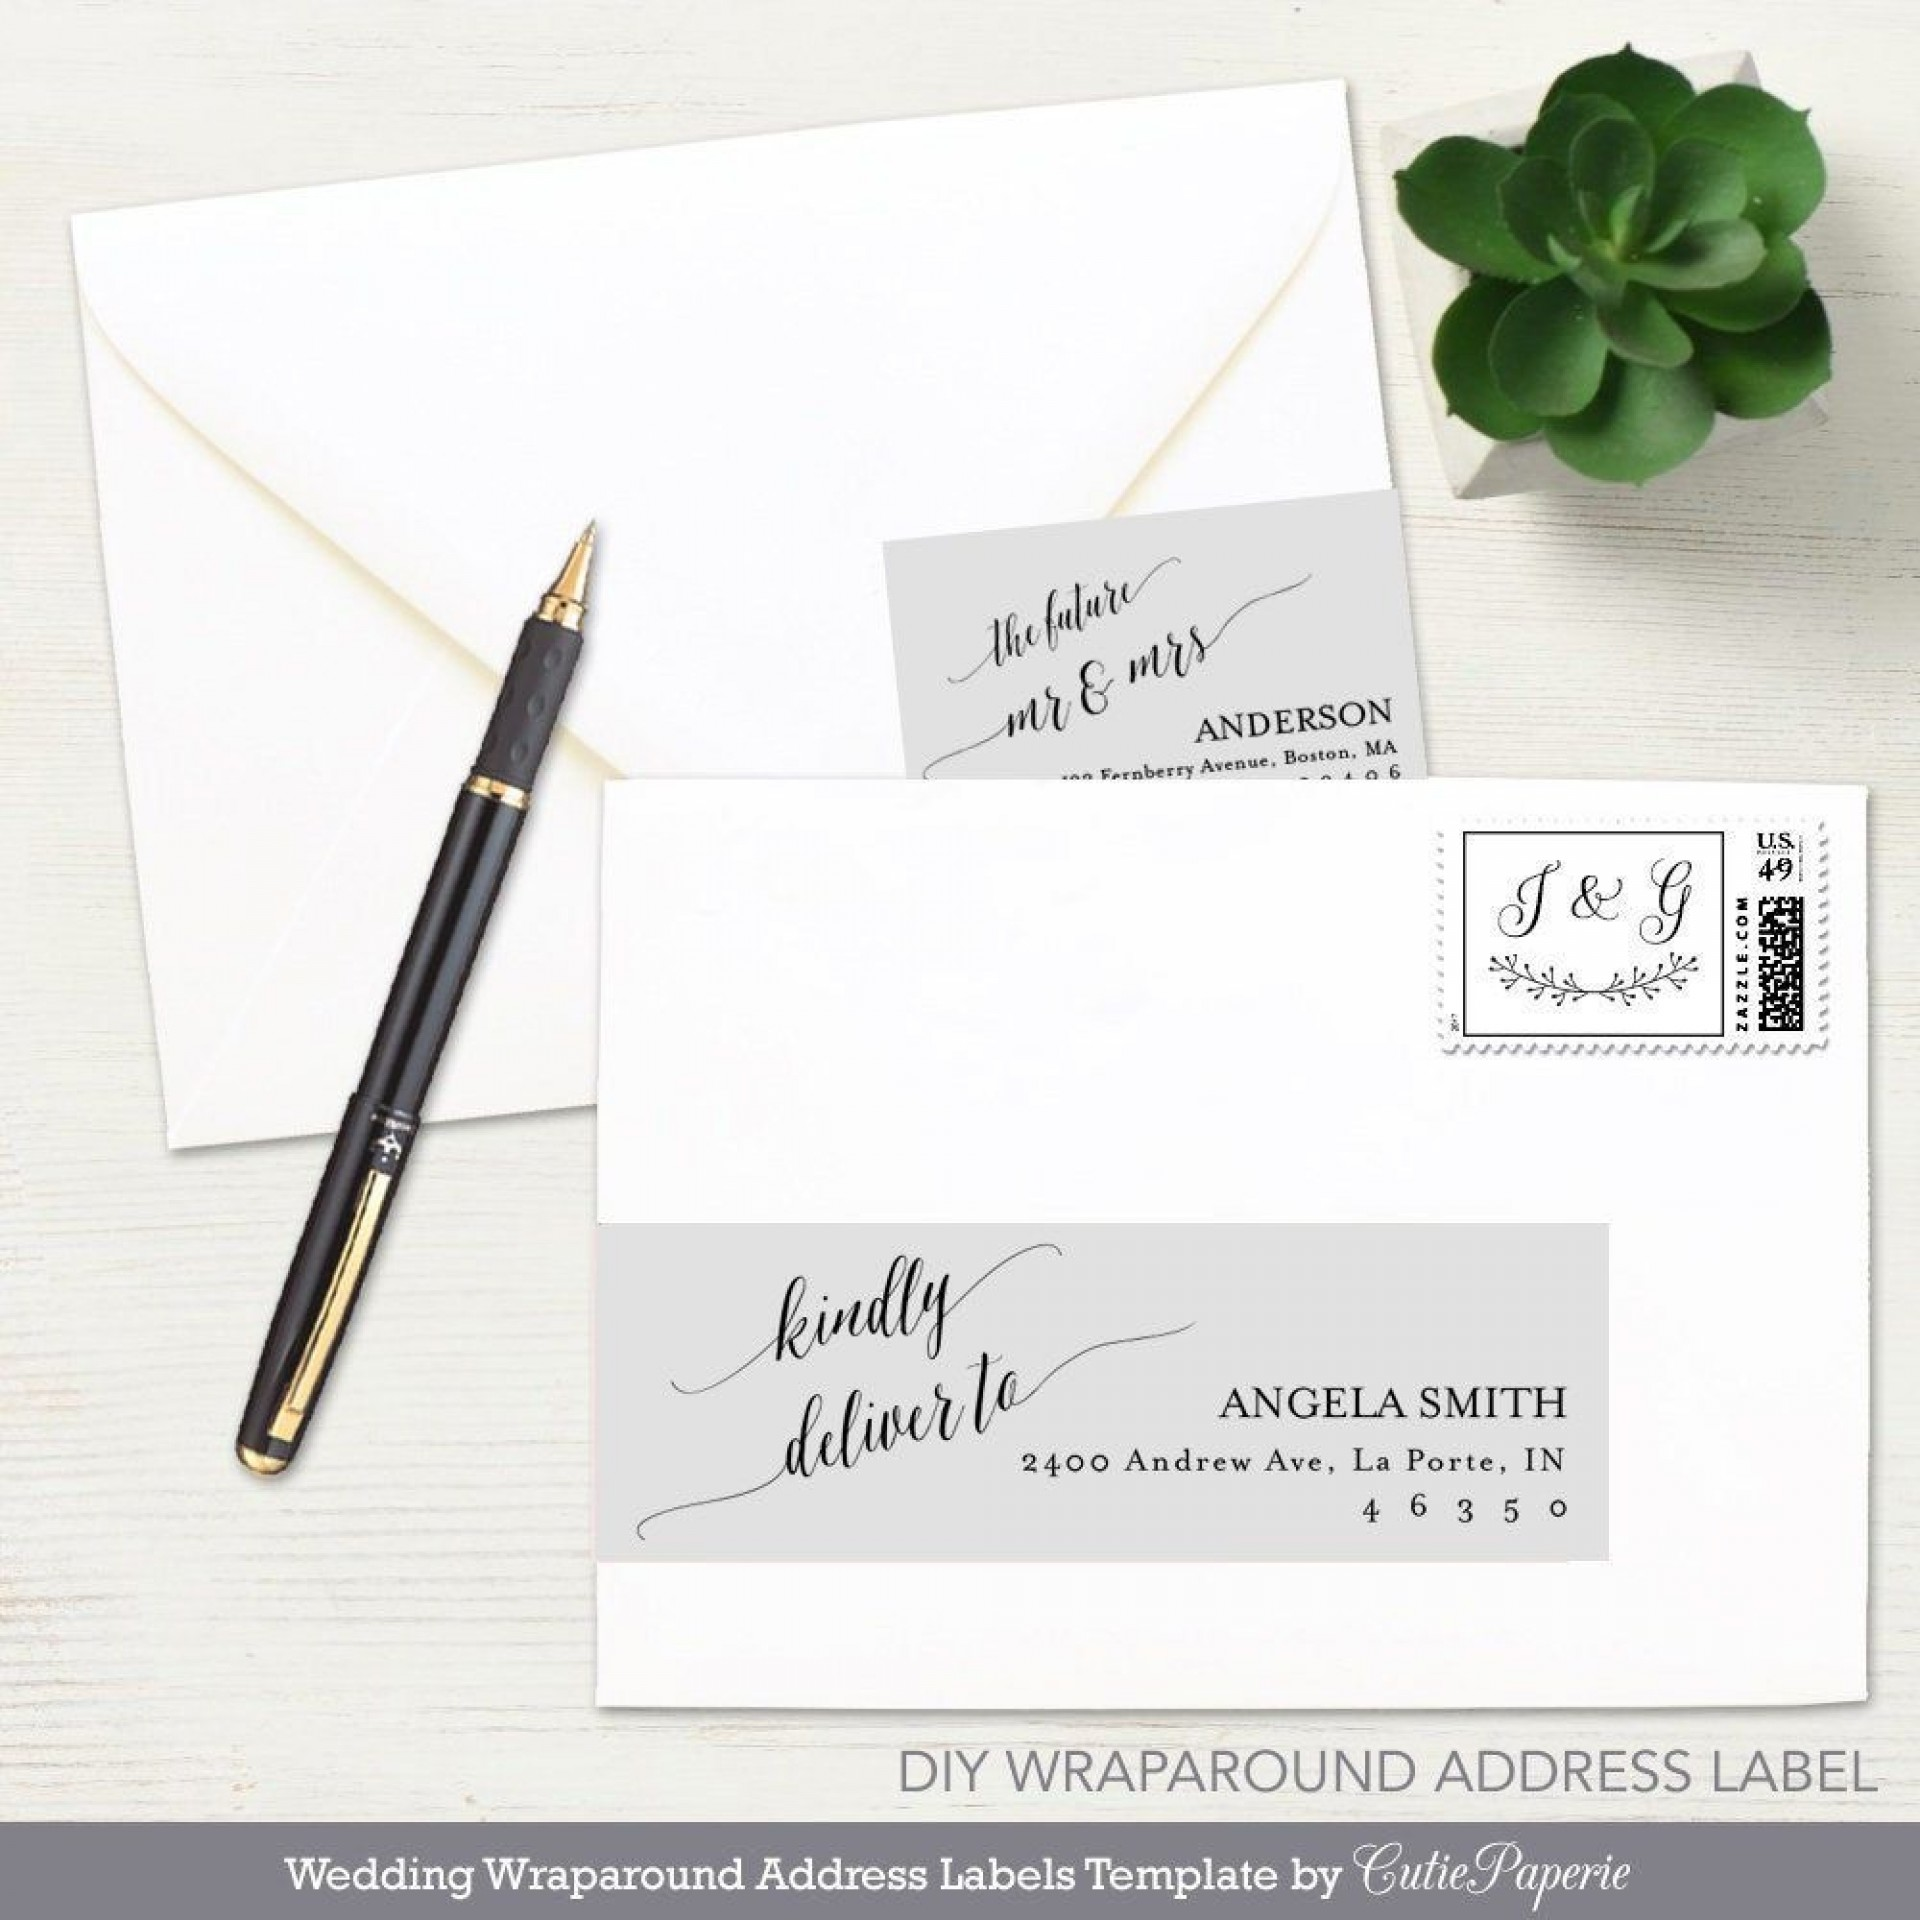 002 Dreaded Wedding Addres Label Template Example  Free Printable1920